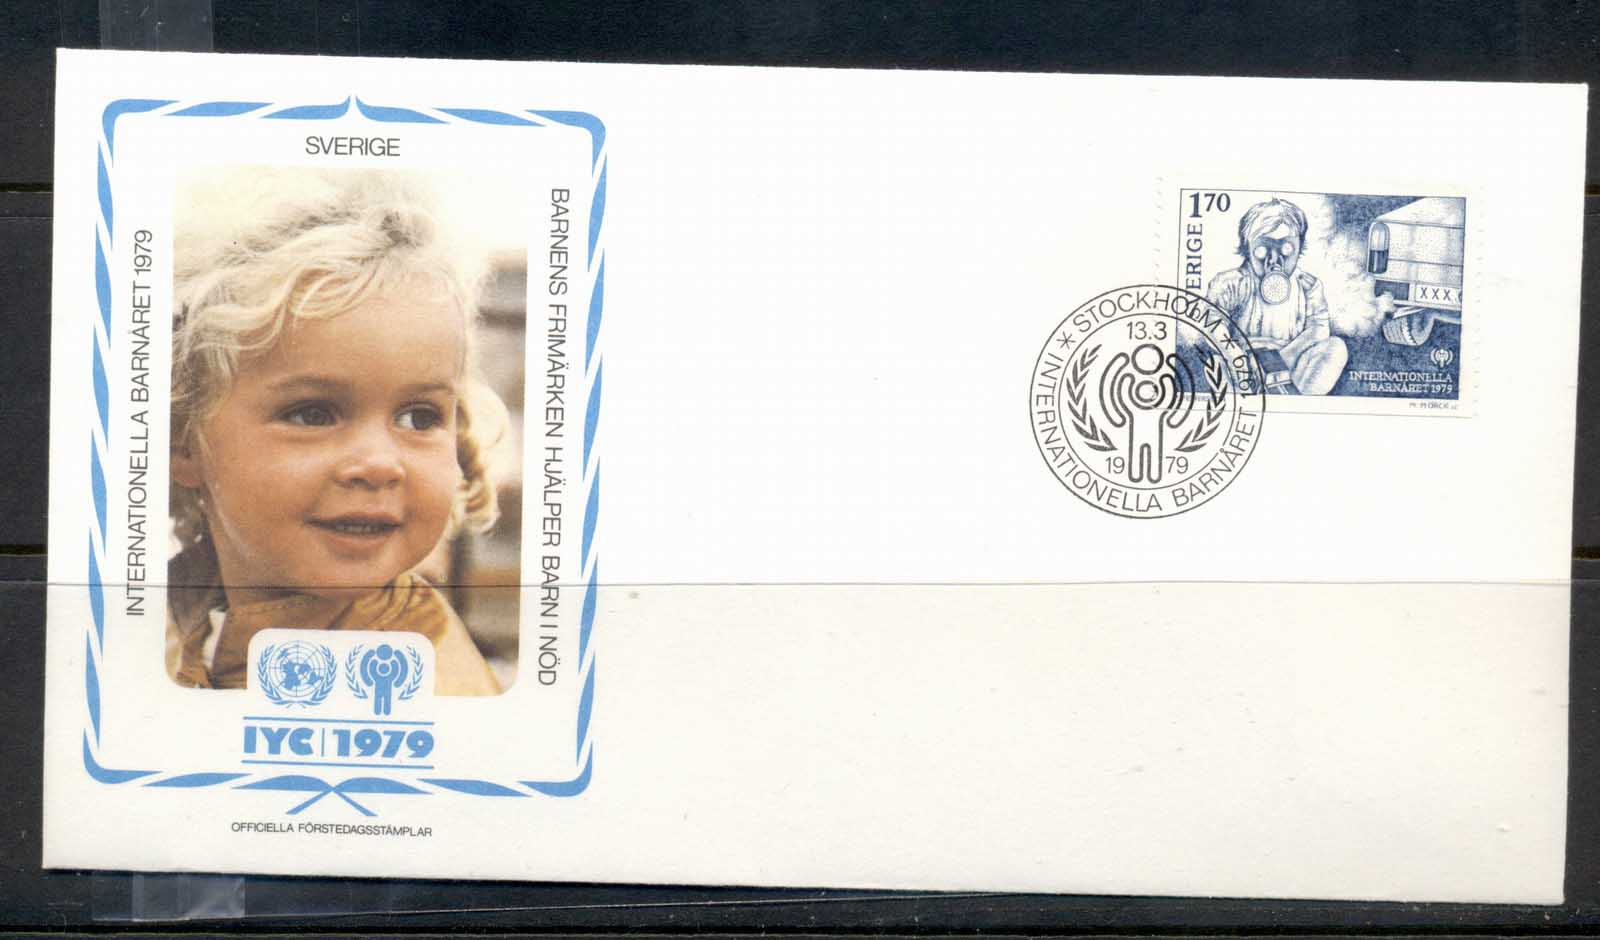 Sweden 1979 IYC International year of the Child FDC